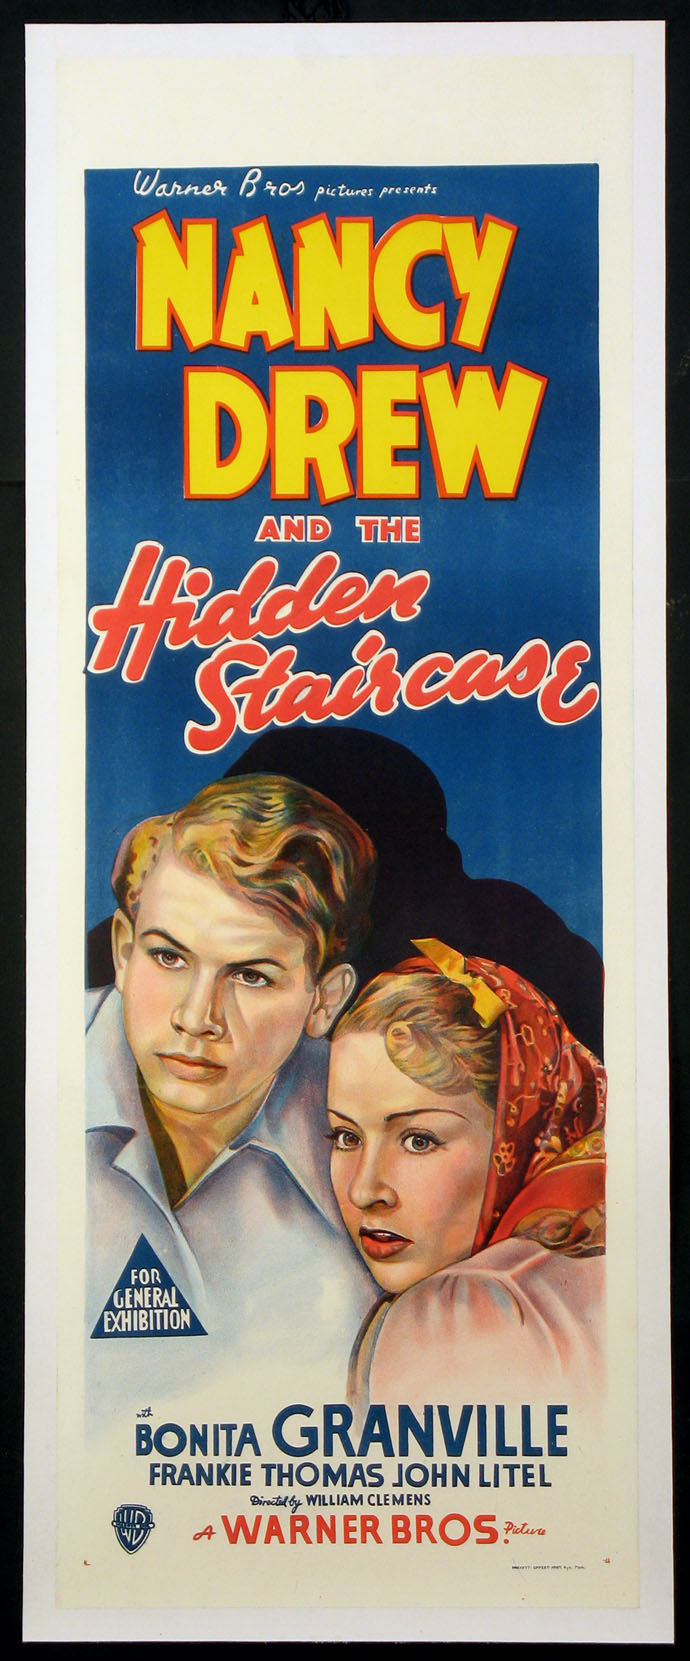 NANCY DREW AND THE HIDDEN STAIRCASE @ FilmPosters.com